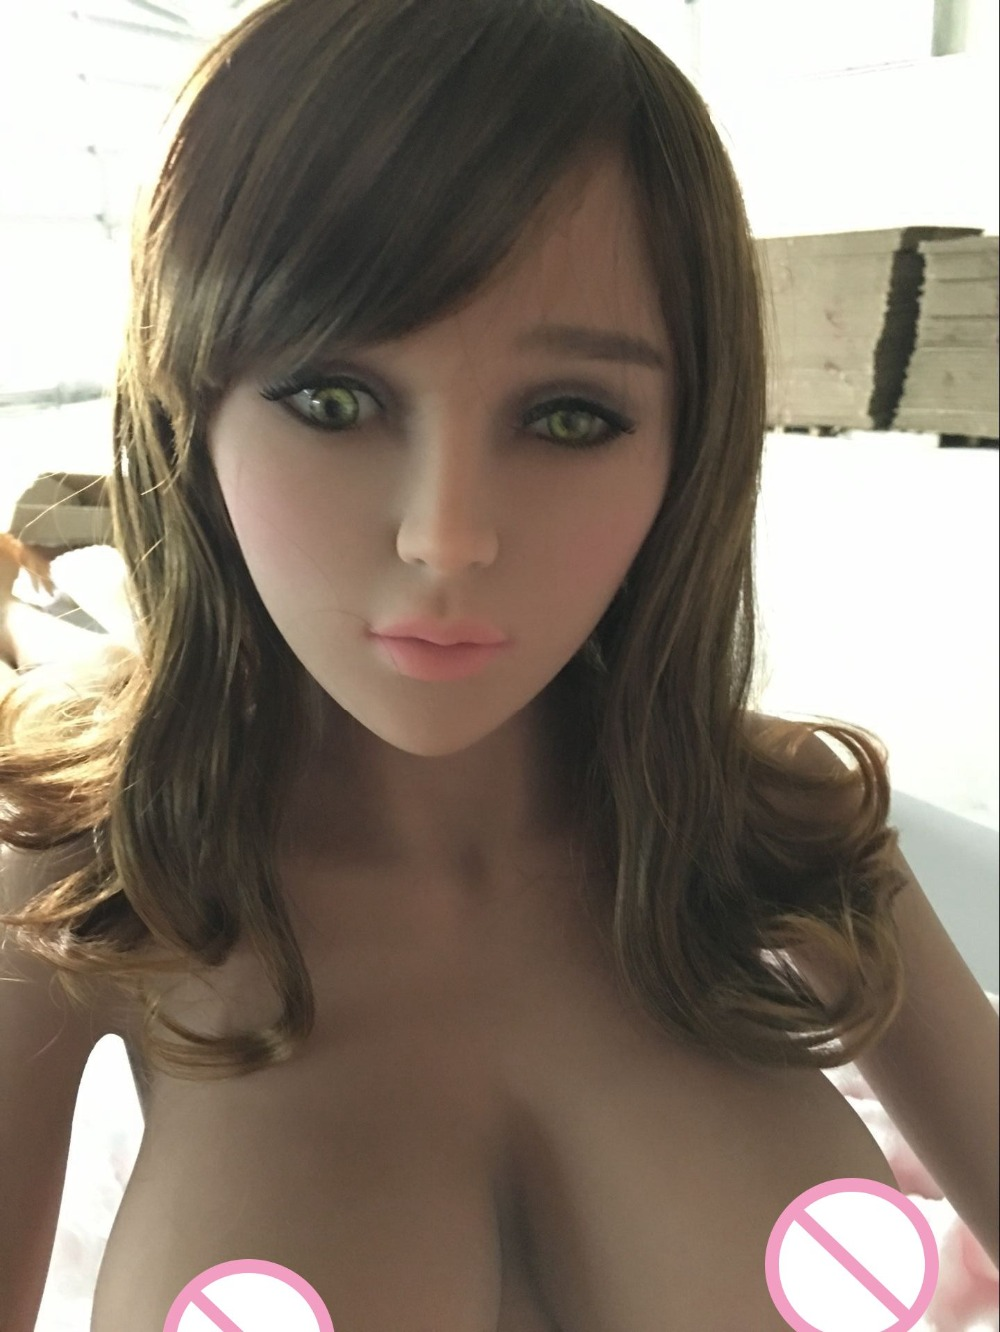 best price 140cm full silicone sex love doll for men, Japanese silicone real sex dolls for male realistic pussy vagina  drop new products on china market 2015 new 140 cm 140cm real japanese full silicone sex love doll for women for ladyboy shemale